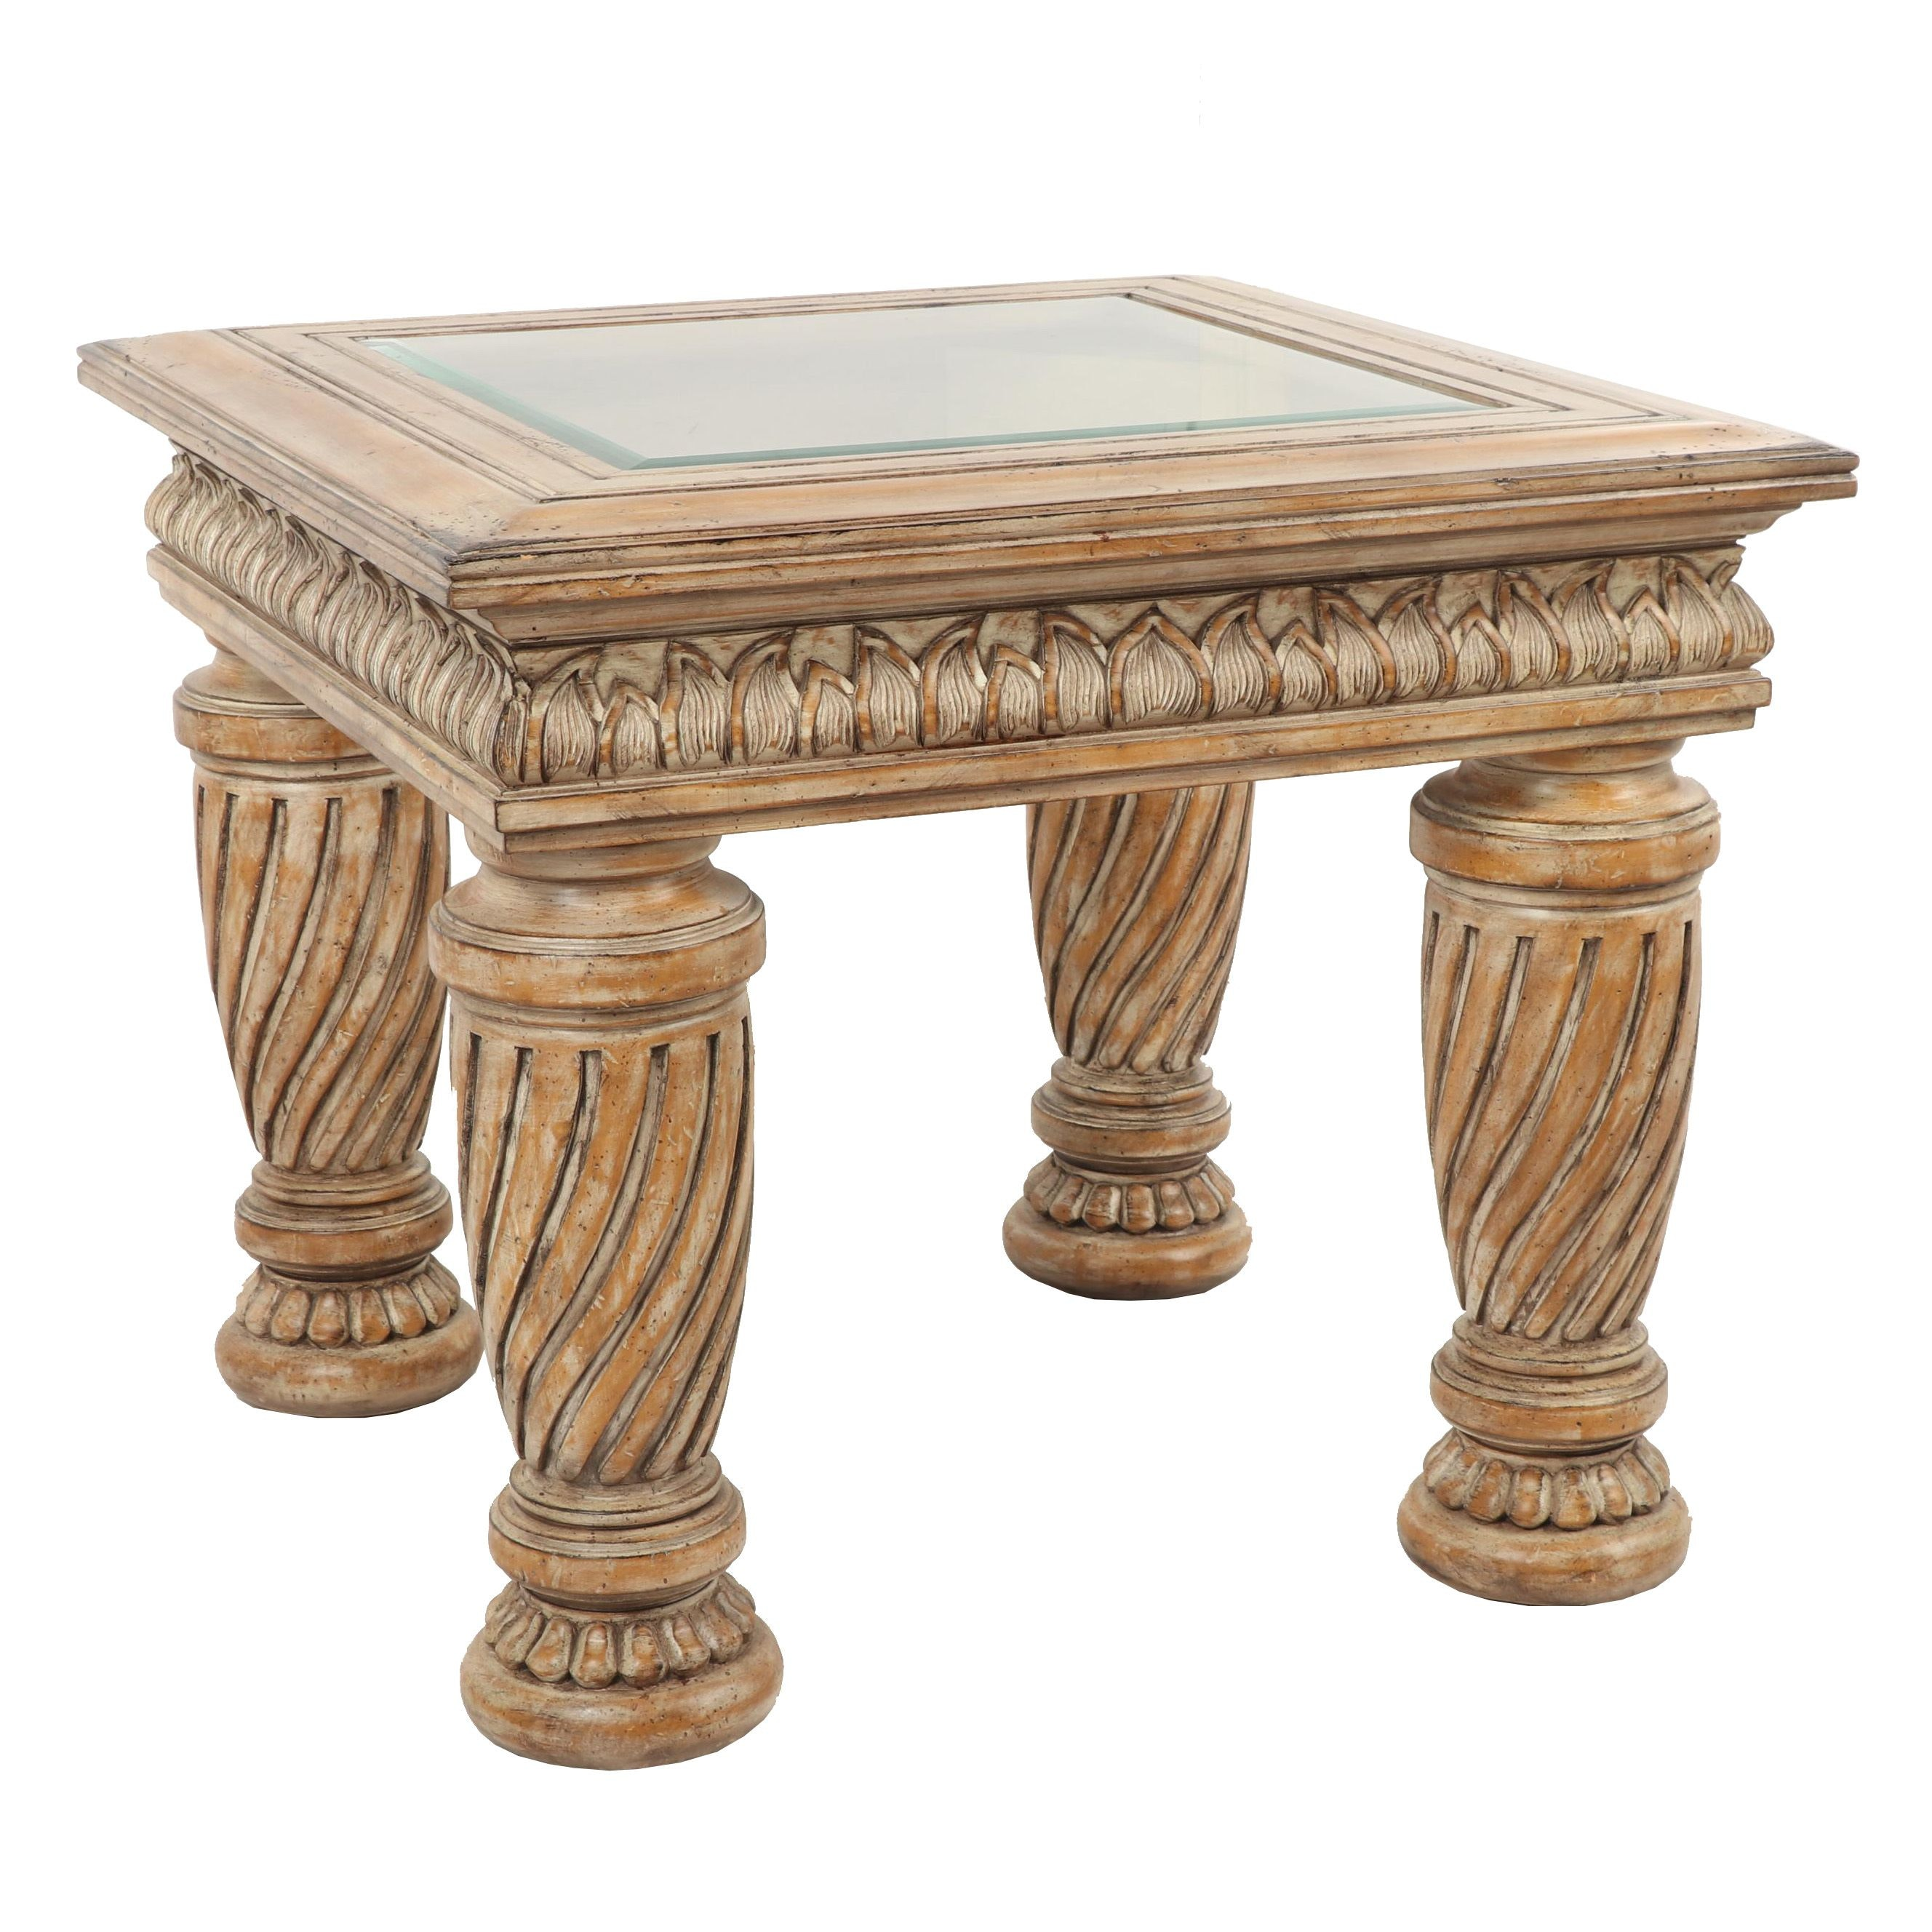 Contemporary Traditional Glass Top Side Table with Distressed Finish